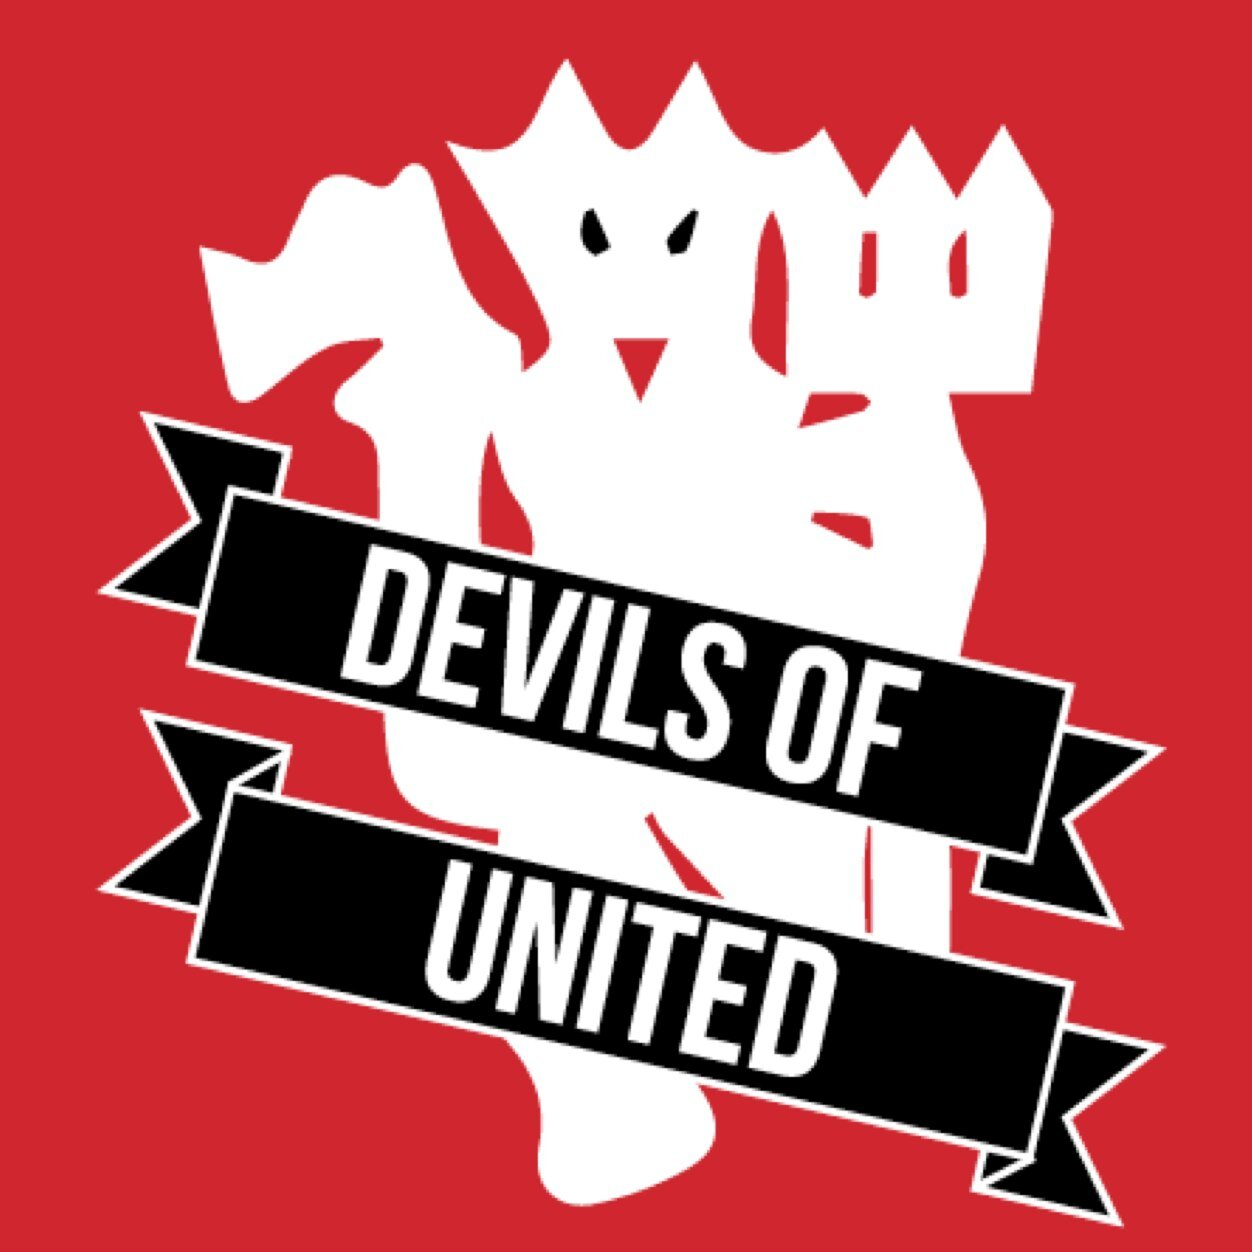 Devils of United